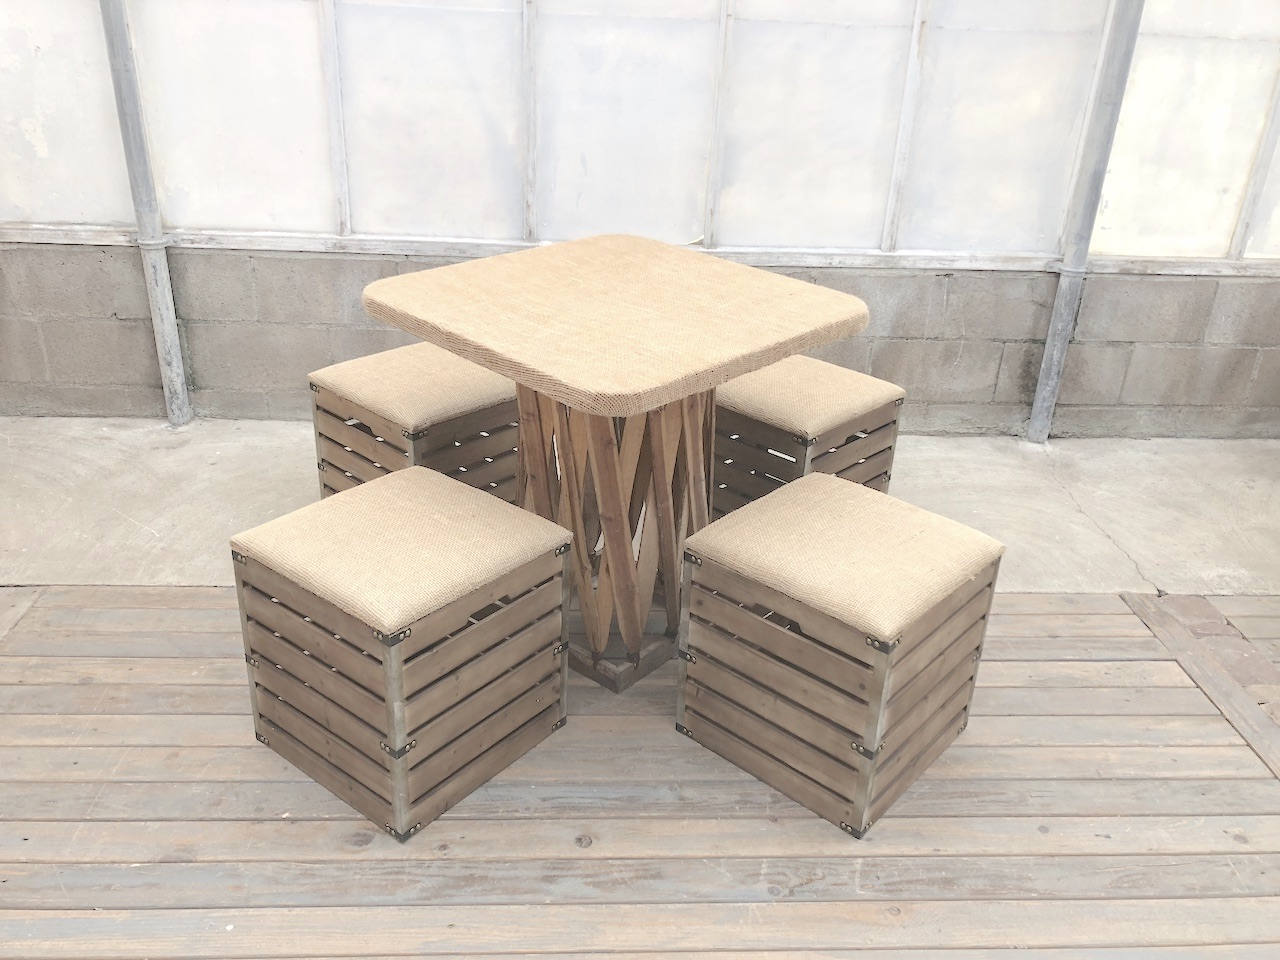 Slatted Stools & Equipales